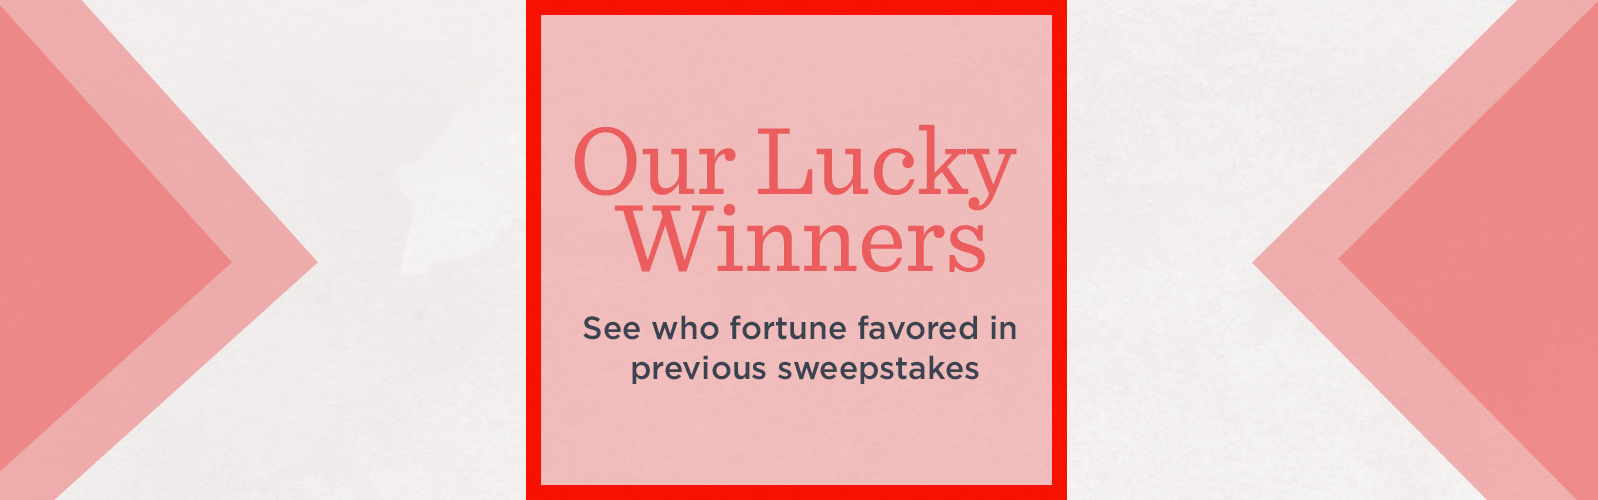 Our Lucky Winners  See who fortune favored in previous sweepstakes